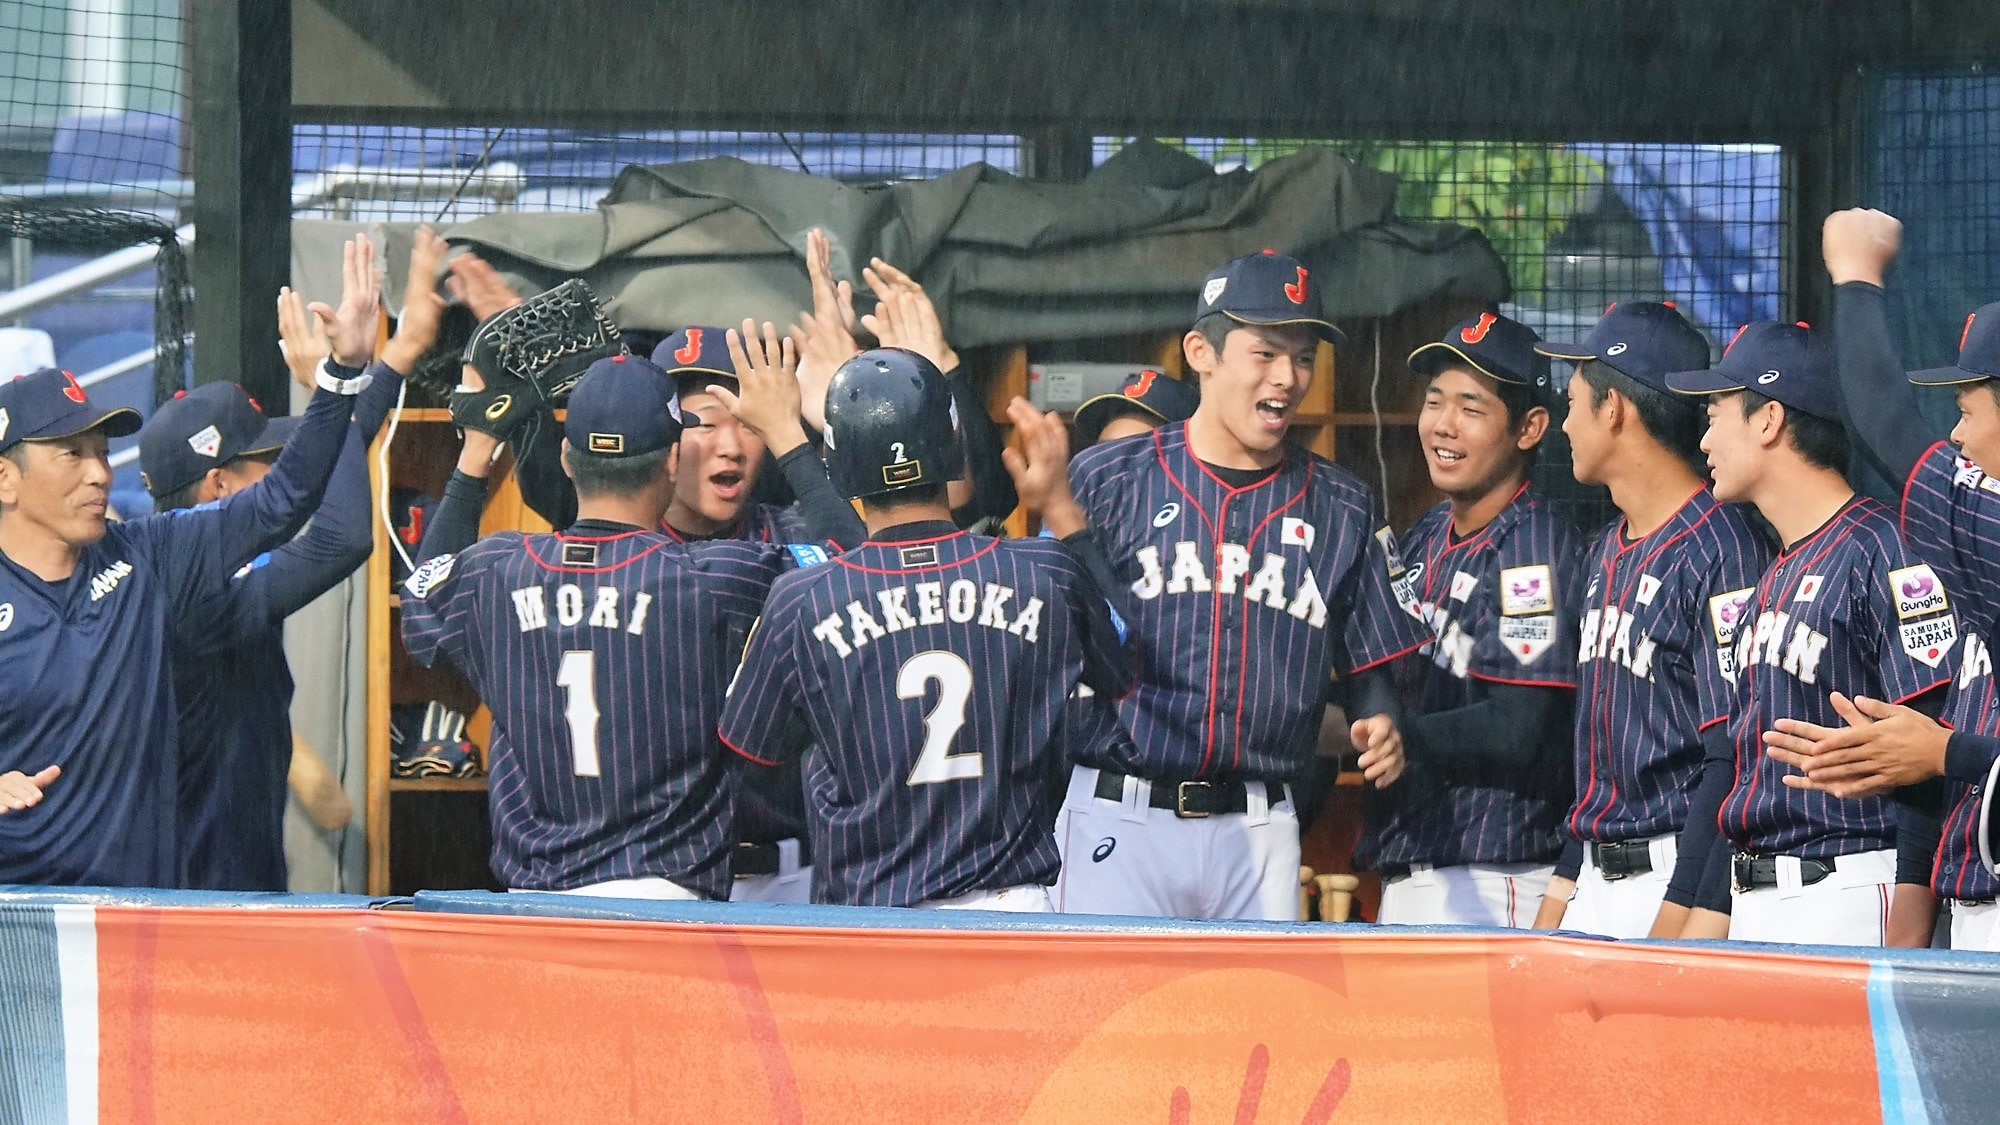 Japan celebrates the first run of the game